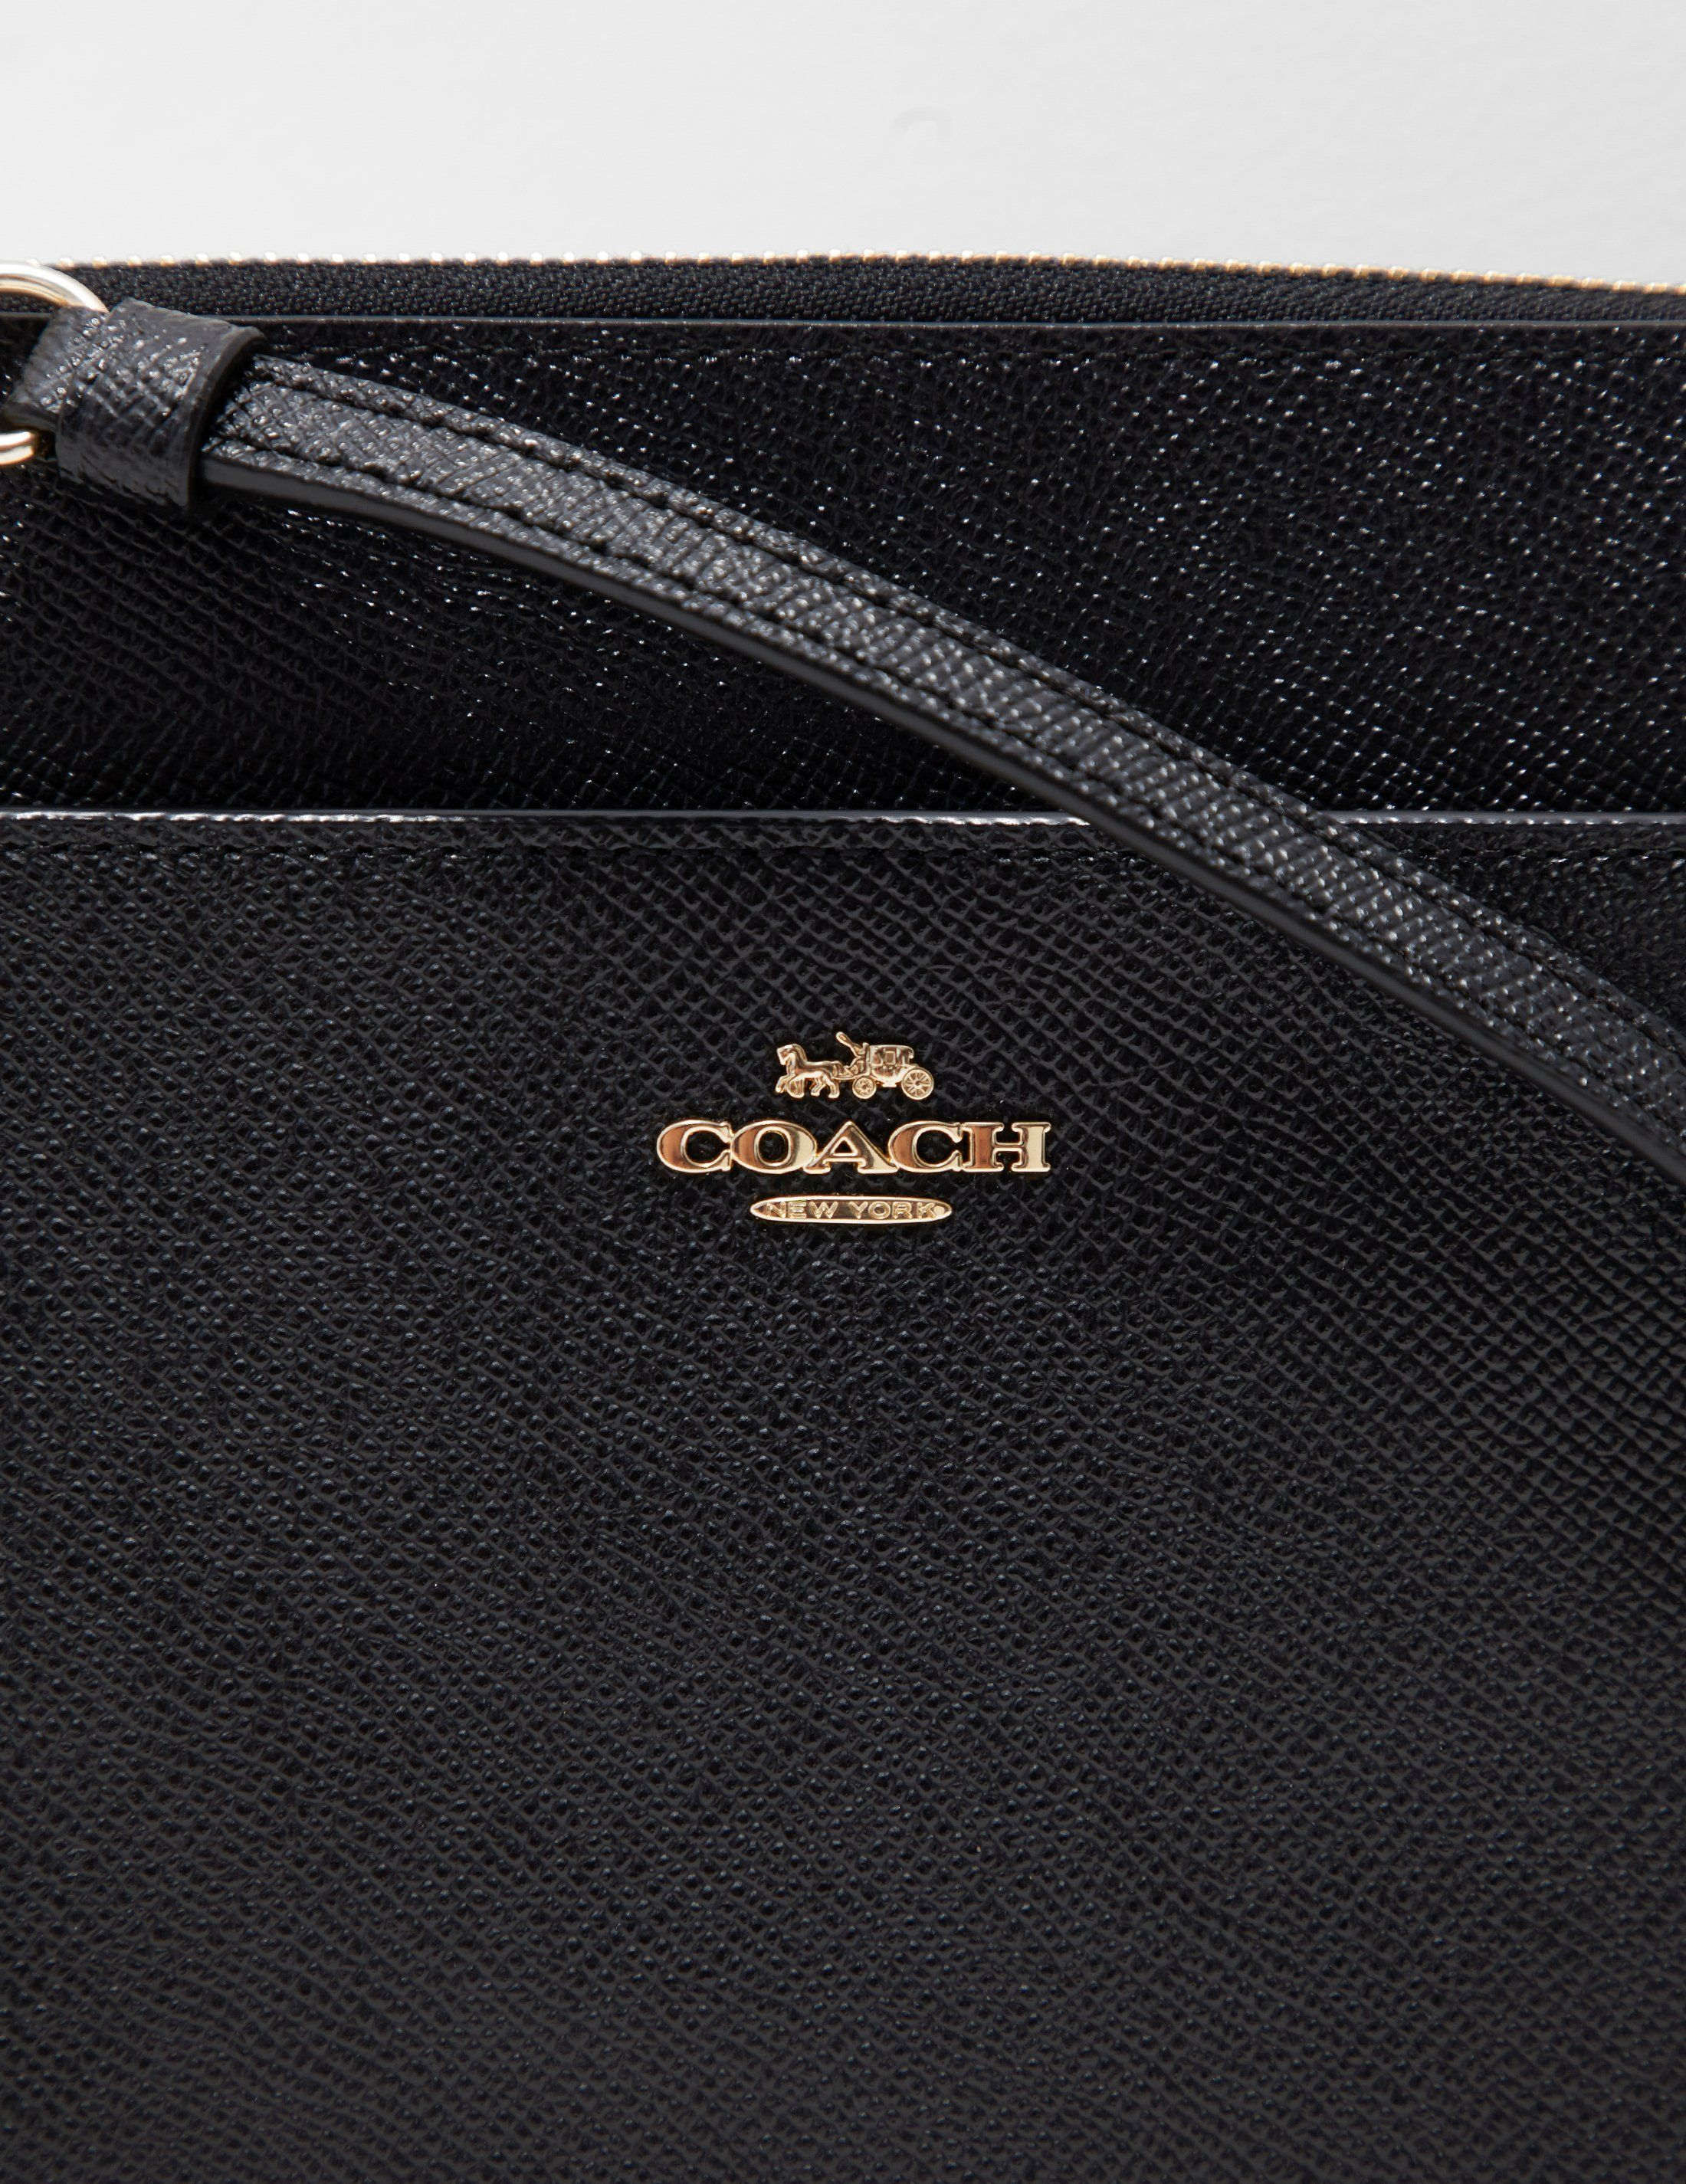 COACH Messenger Shoulder Bag